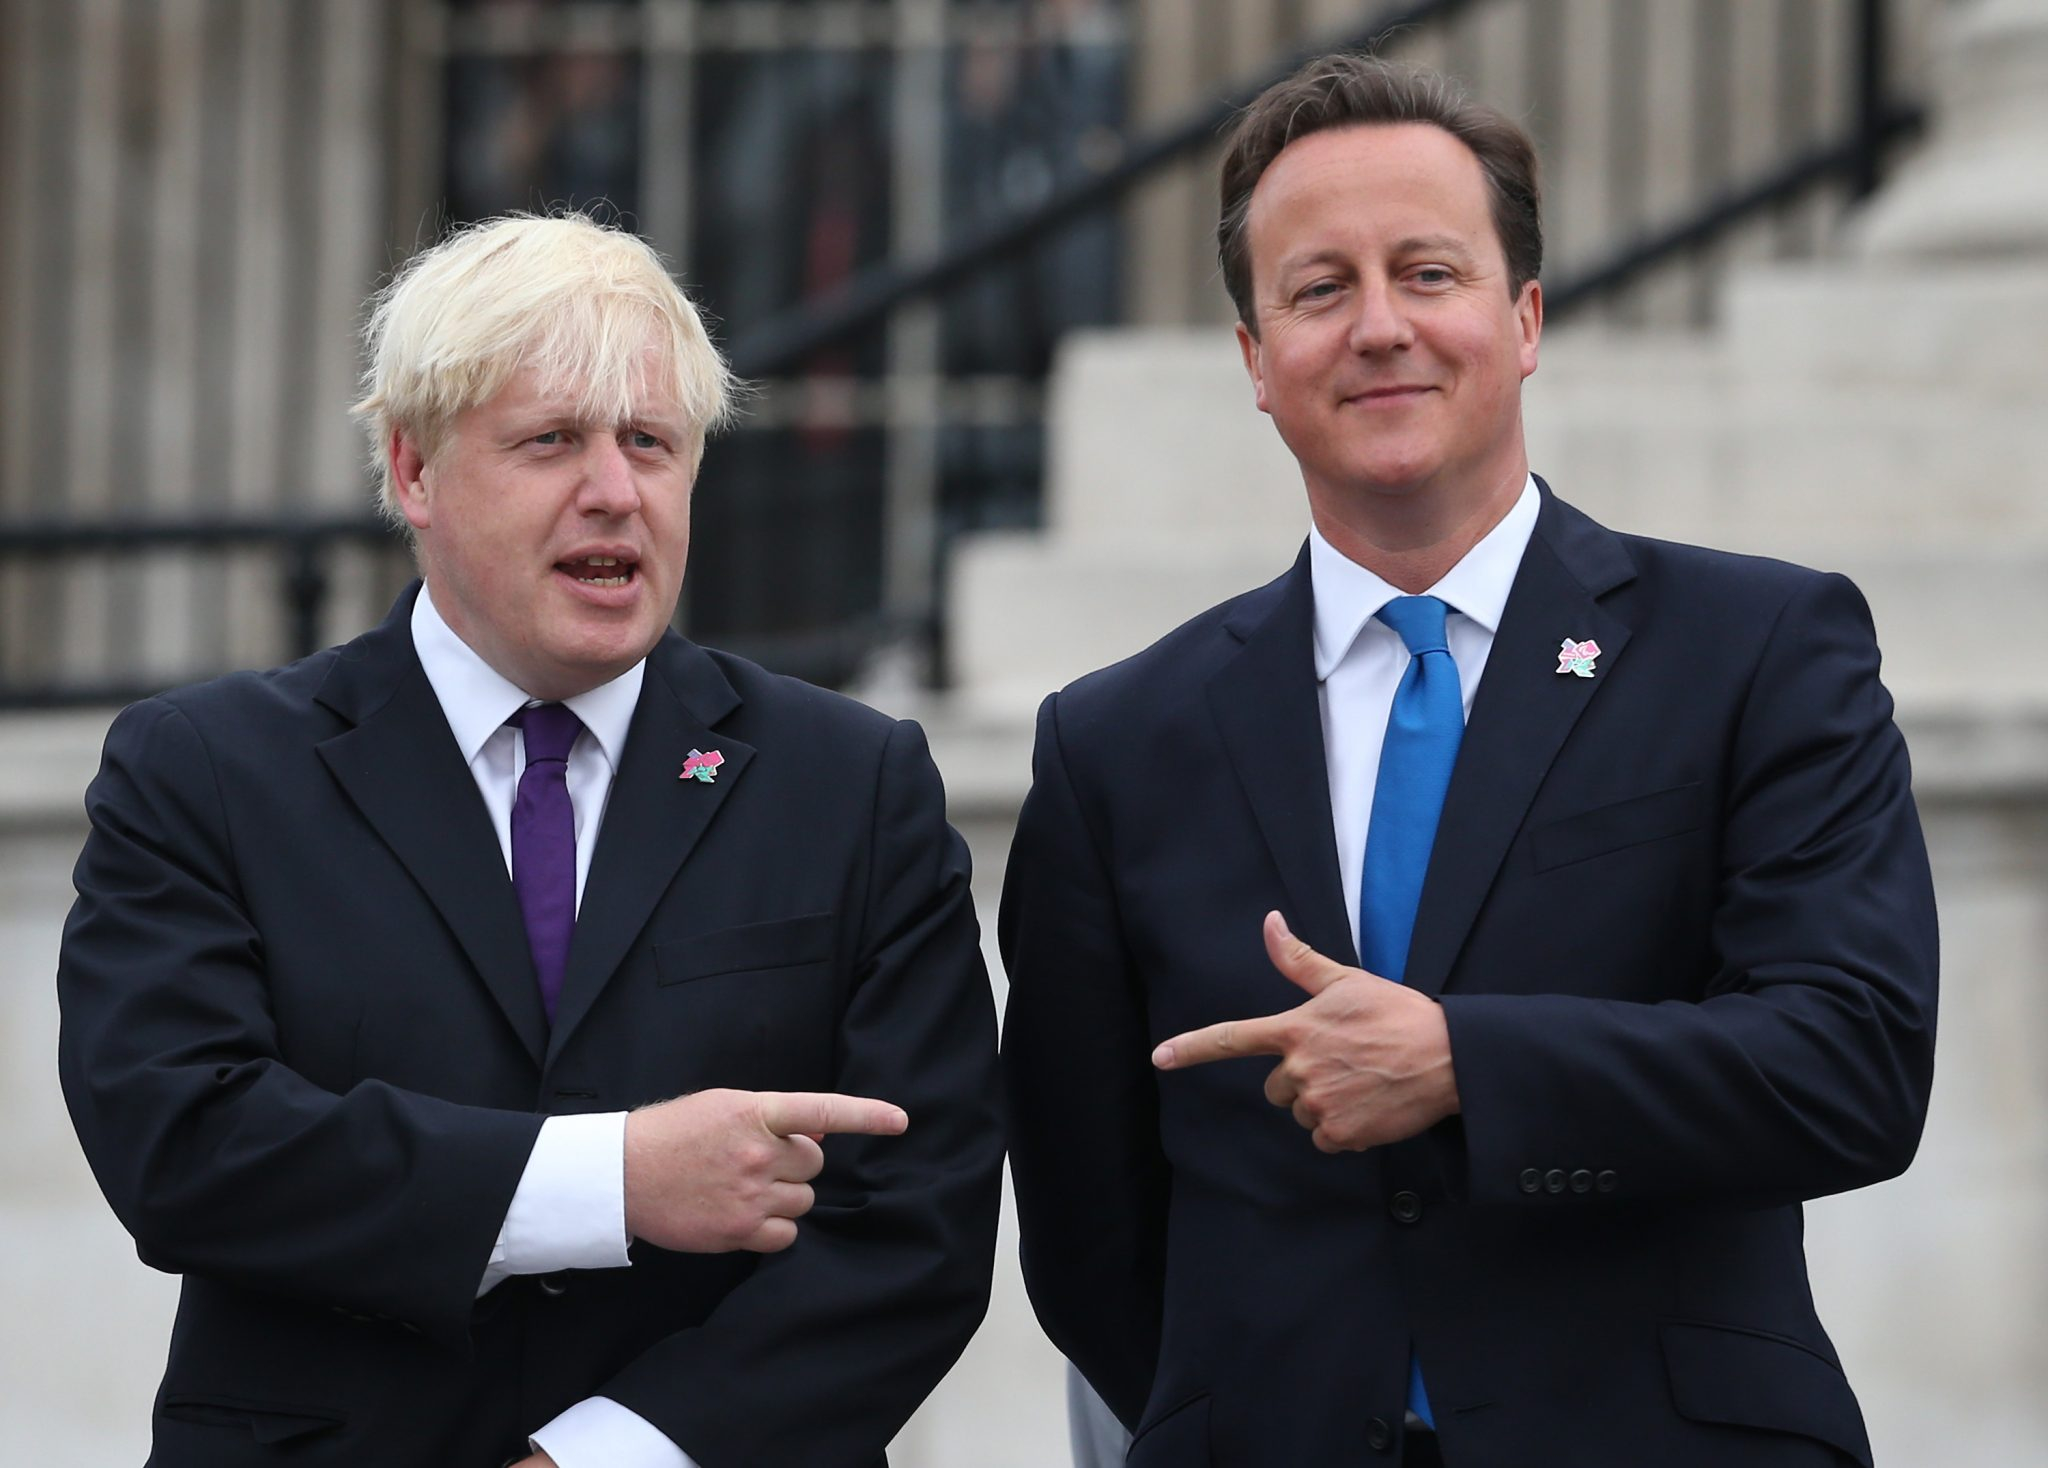 David Cameron and Boris Johnson pointing at each other